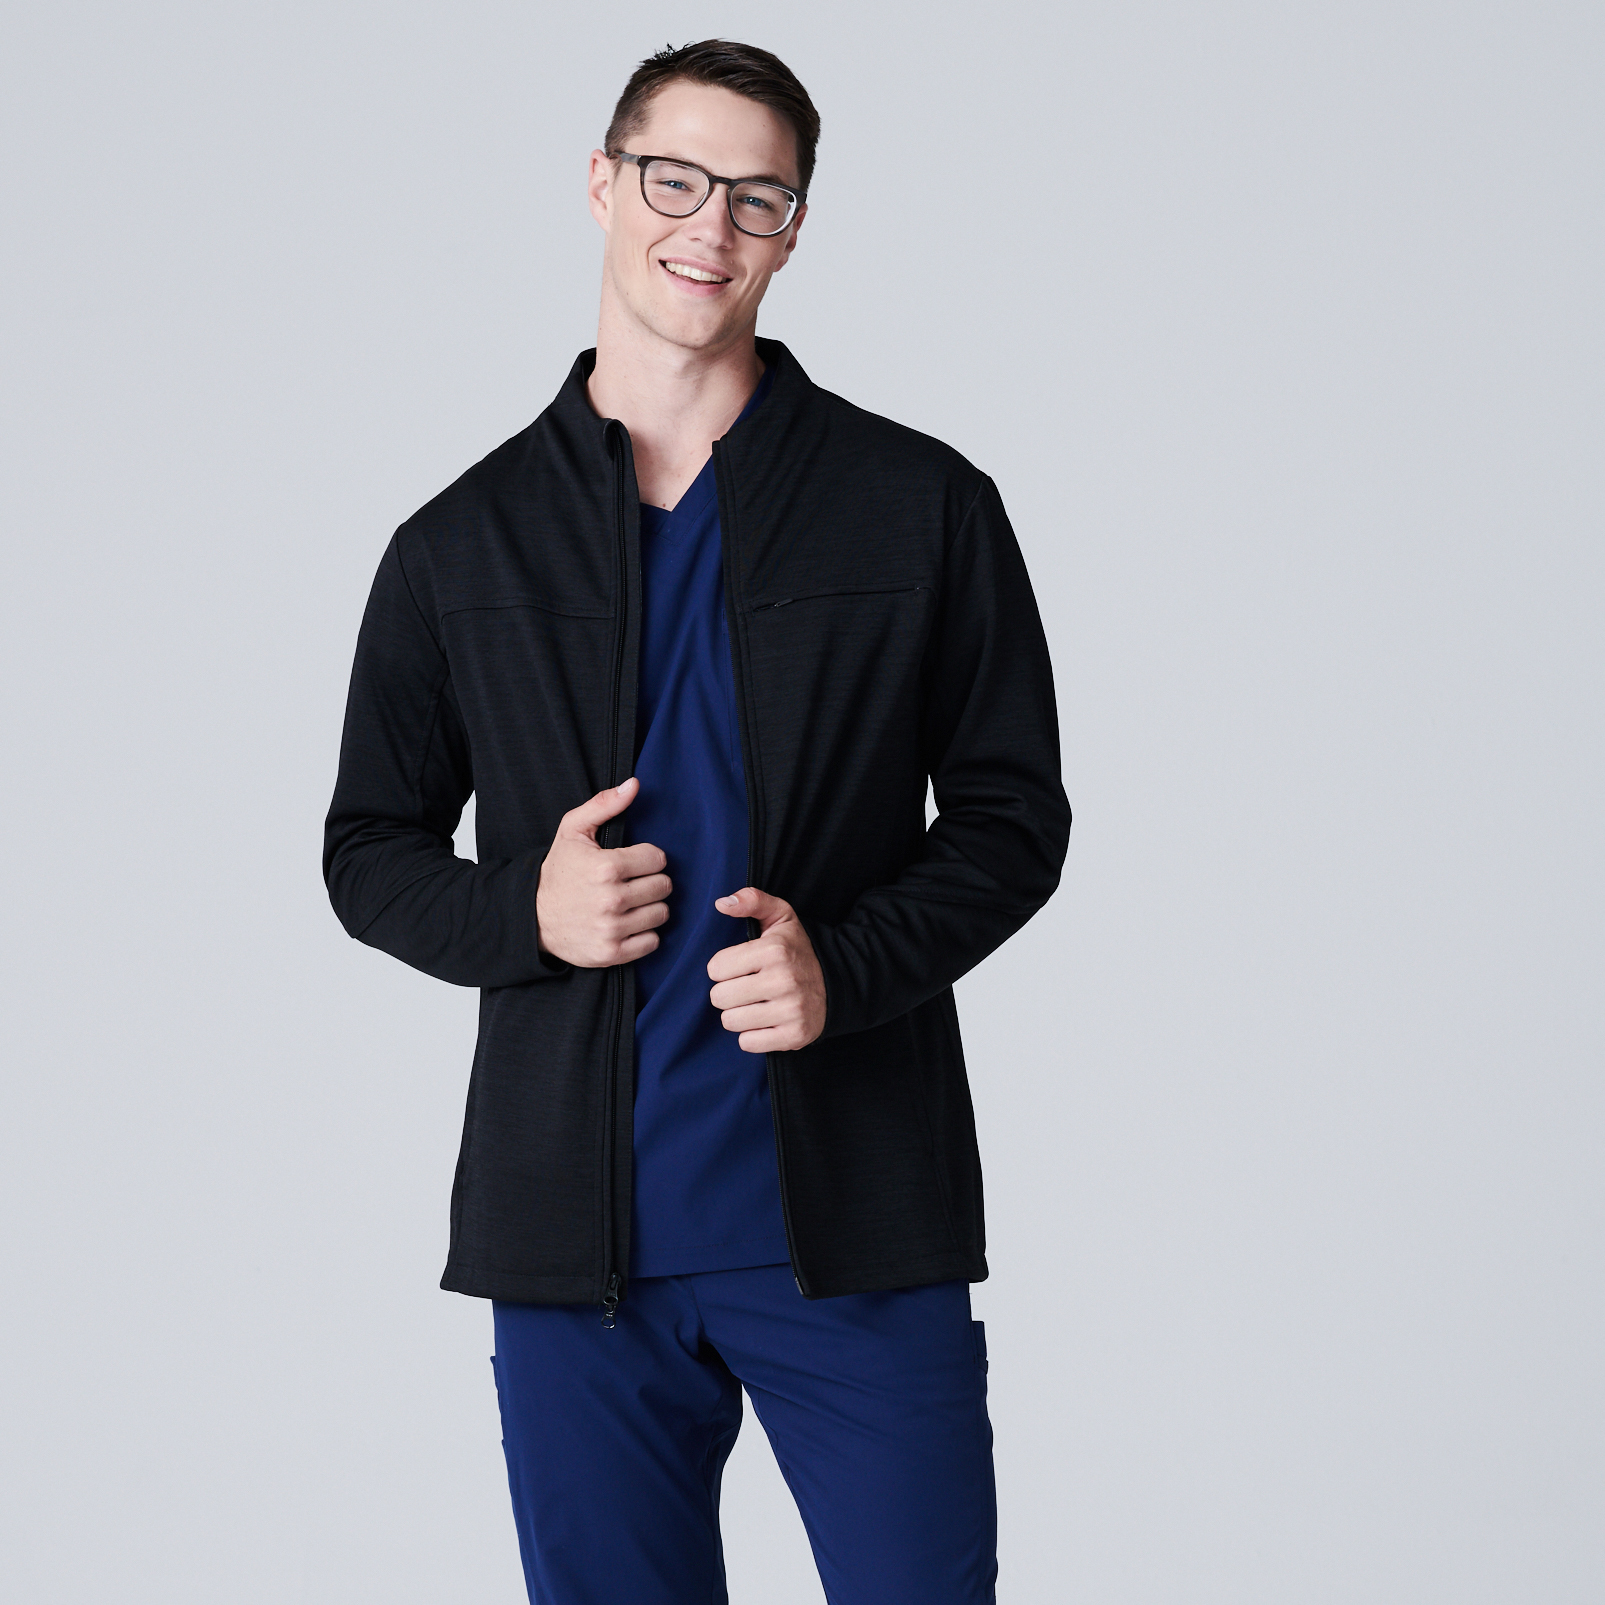 035210f2028 It comes in two colors: Black and Navy. Nursing Scrub Jacket